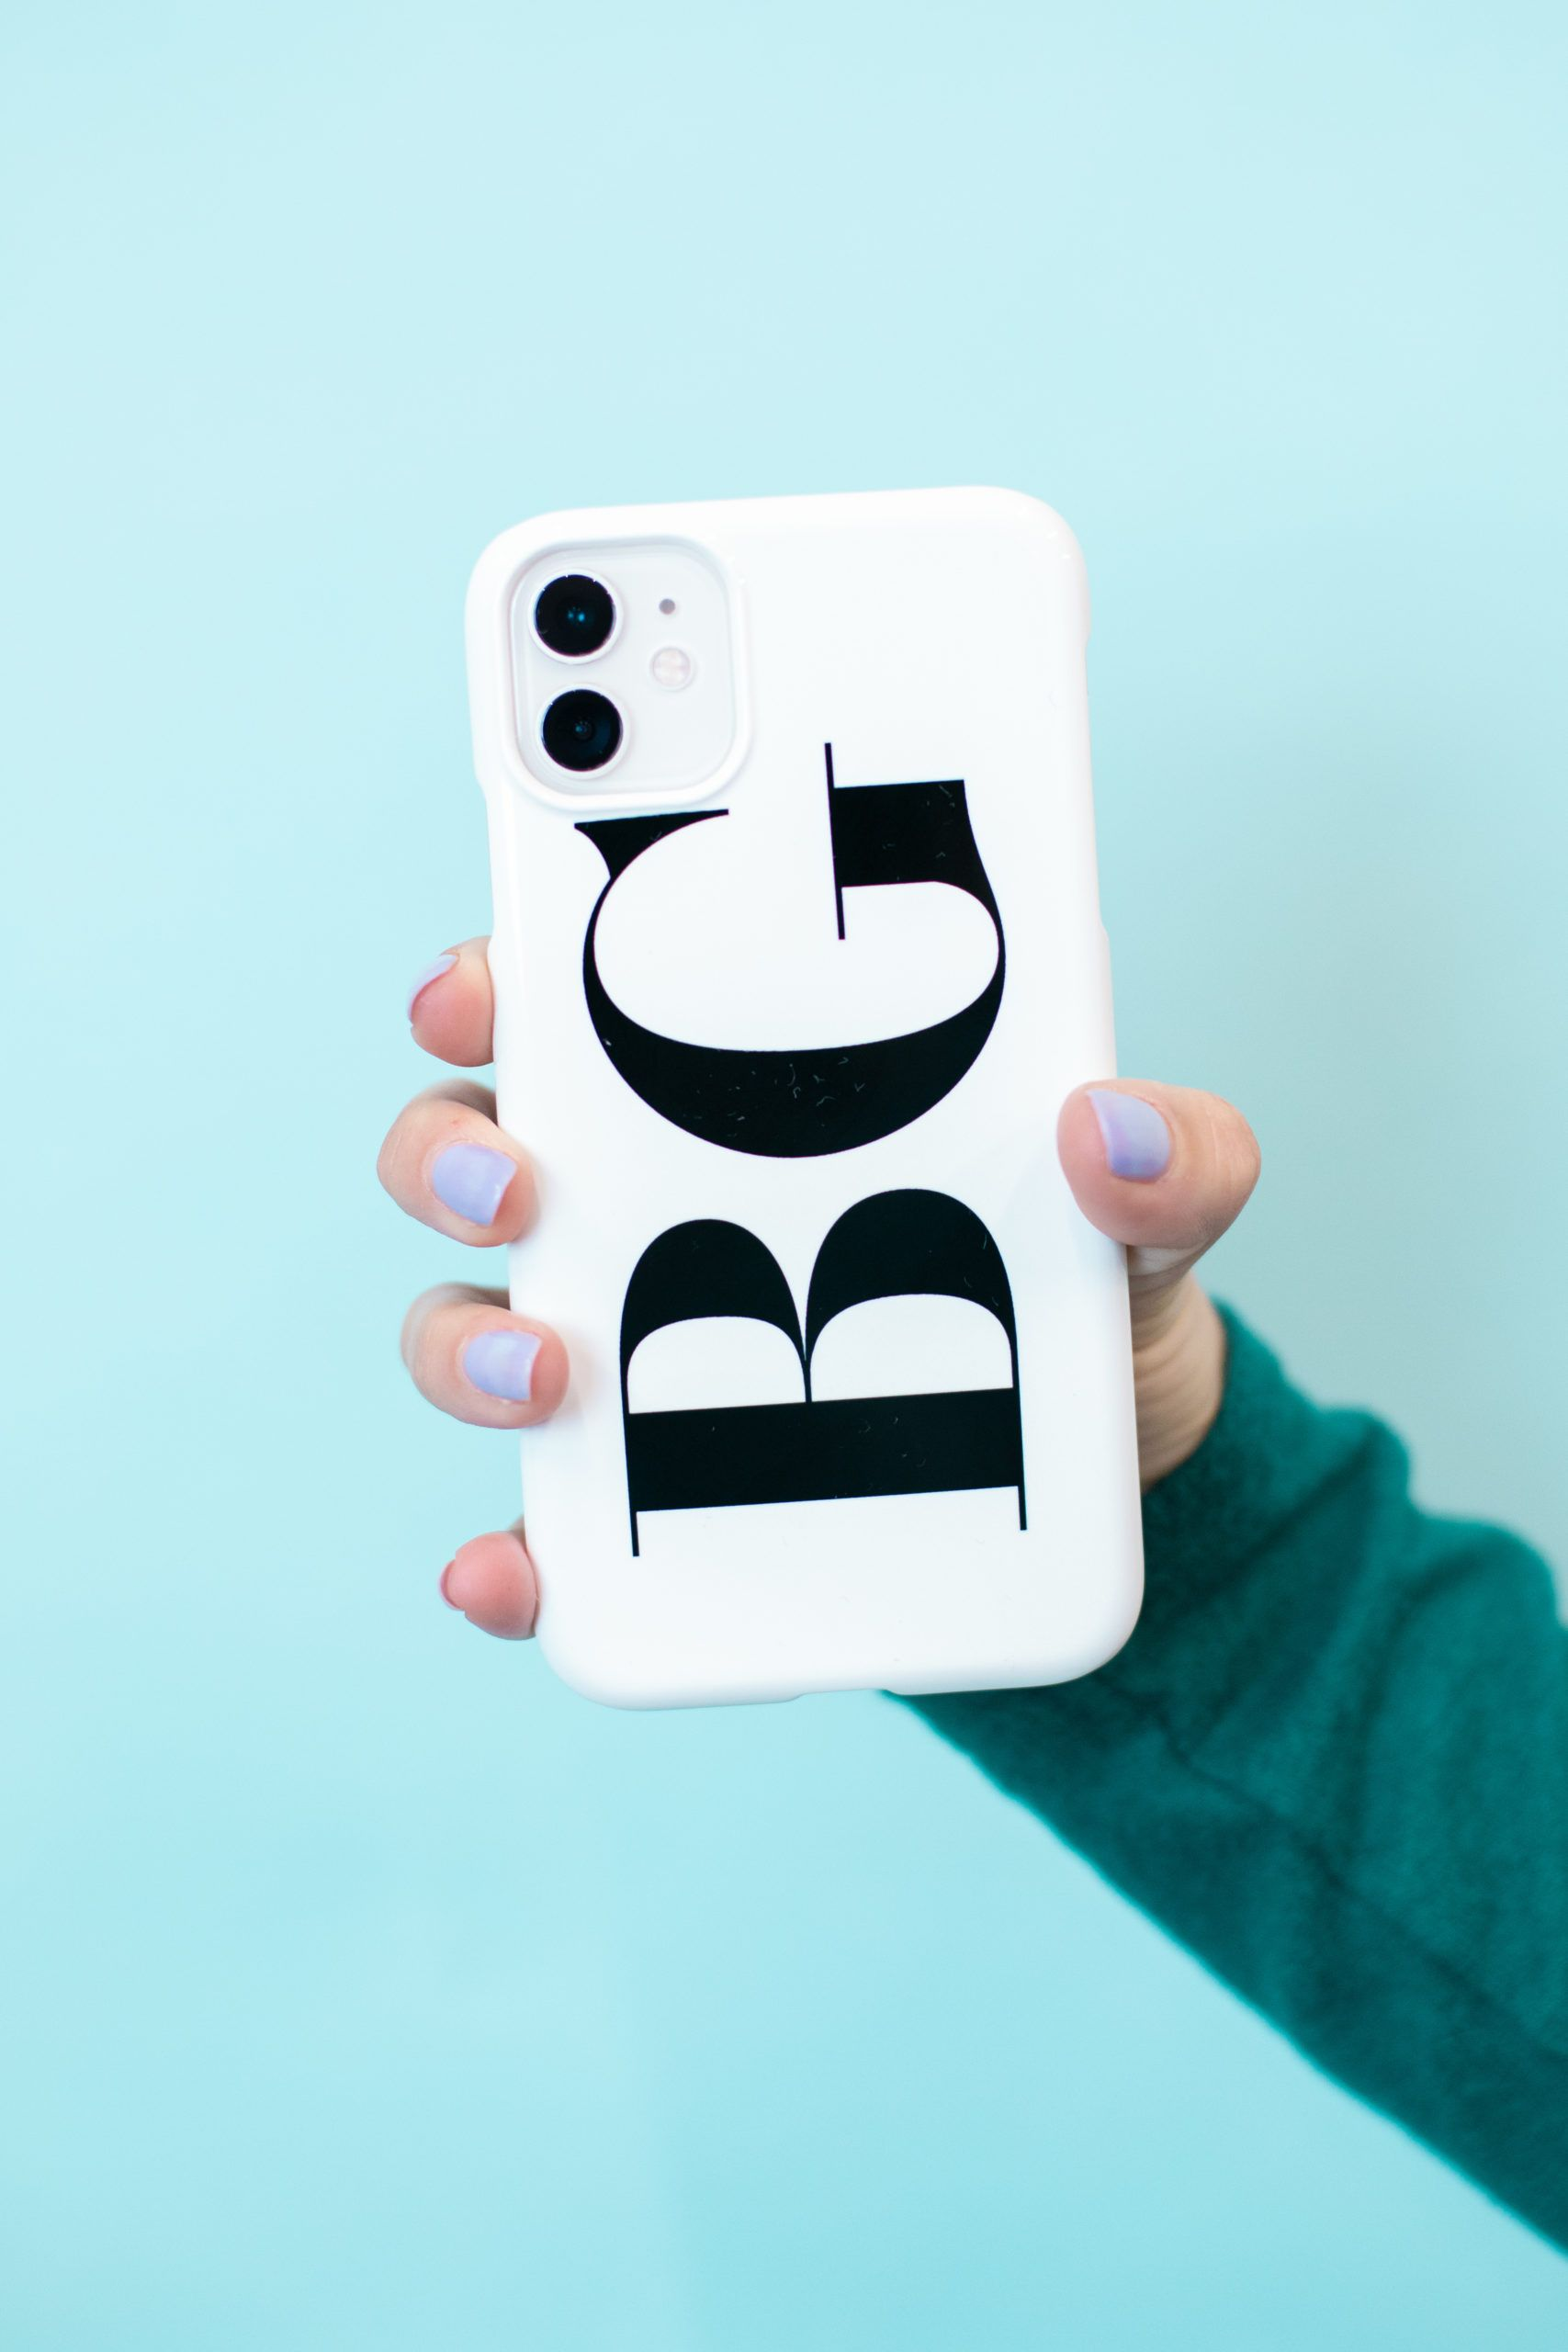 Case Closed Our Favorite Phone Cases FOUND Living in